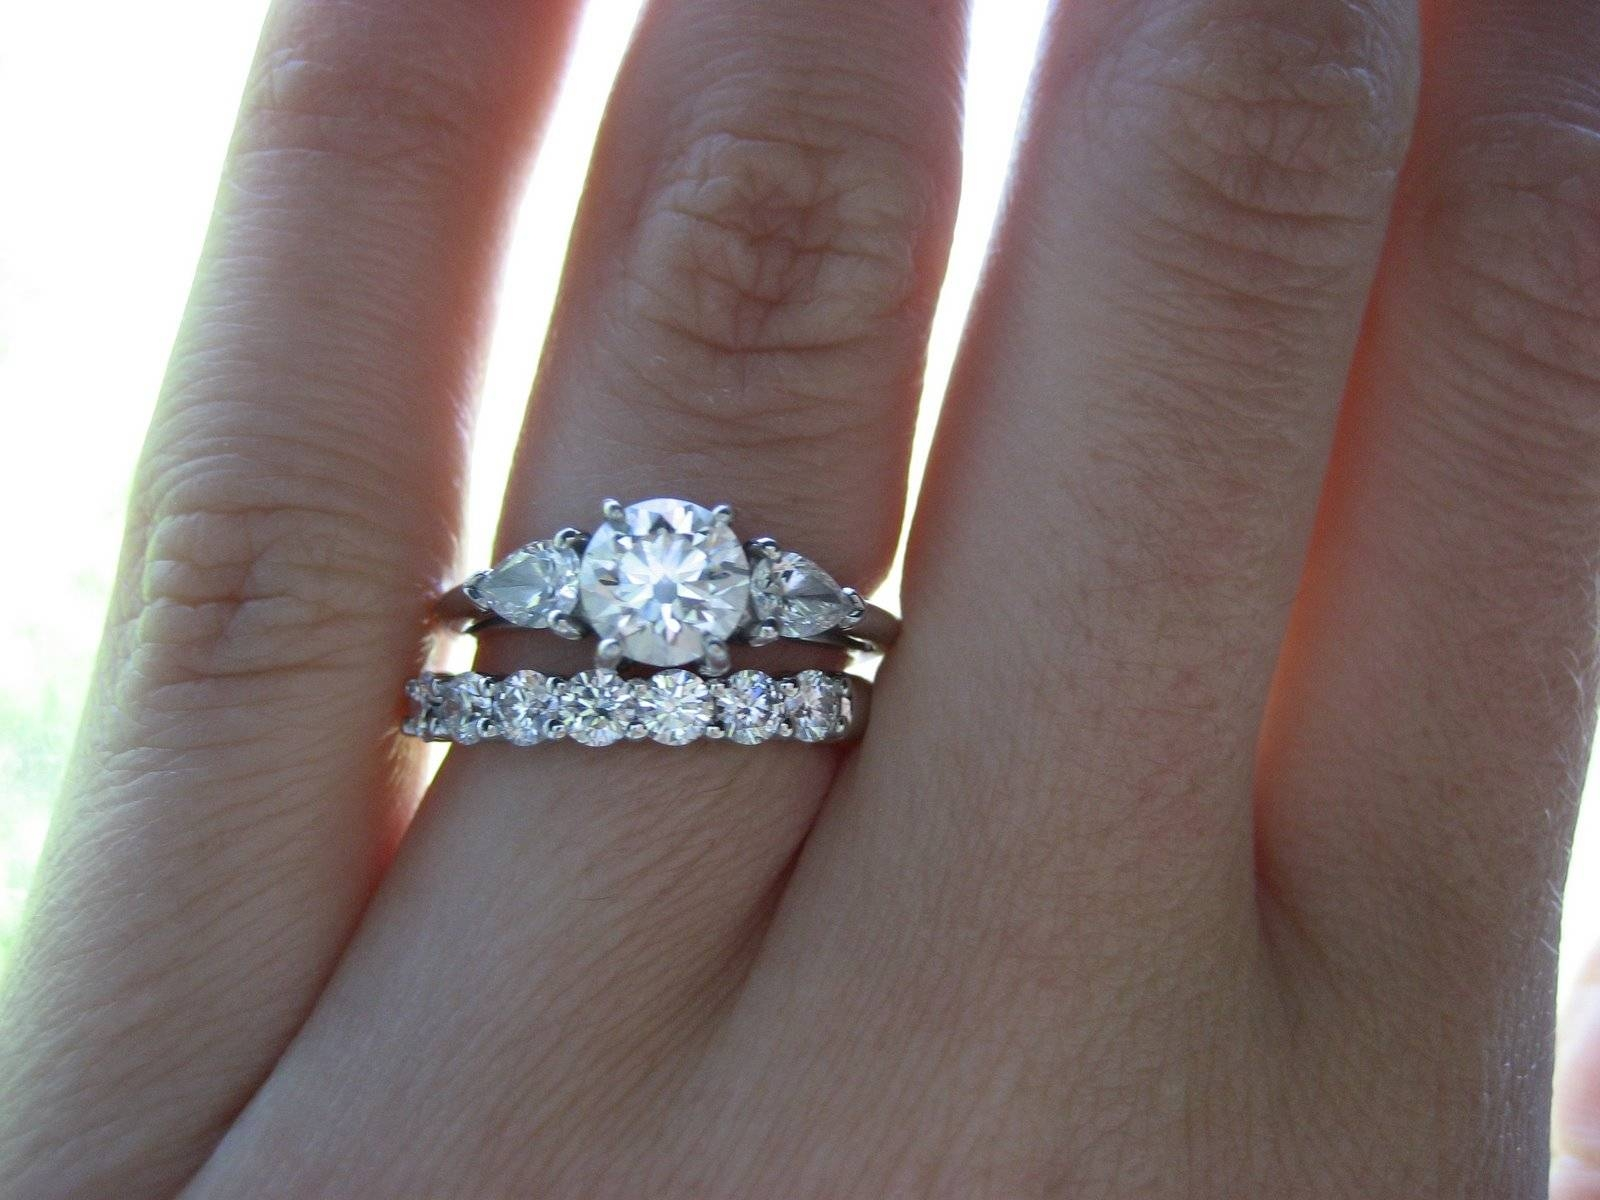 Wedding Rings : Emerald Cut Engagement Ring And Wedding Band Pertaining To Wedding Rings With Engagement Rings (View 13 of 15)